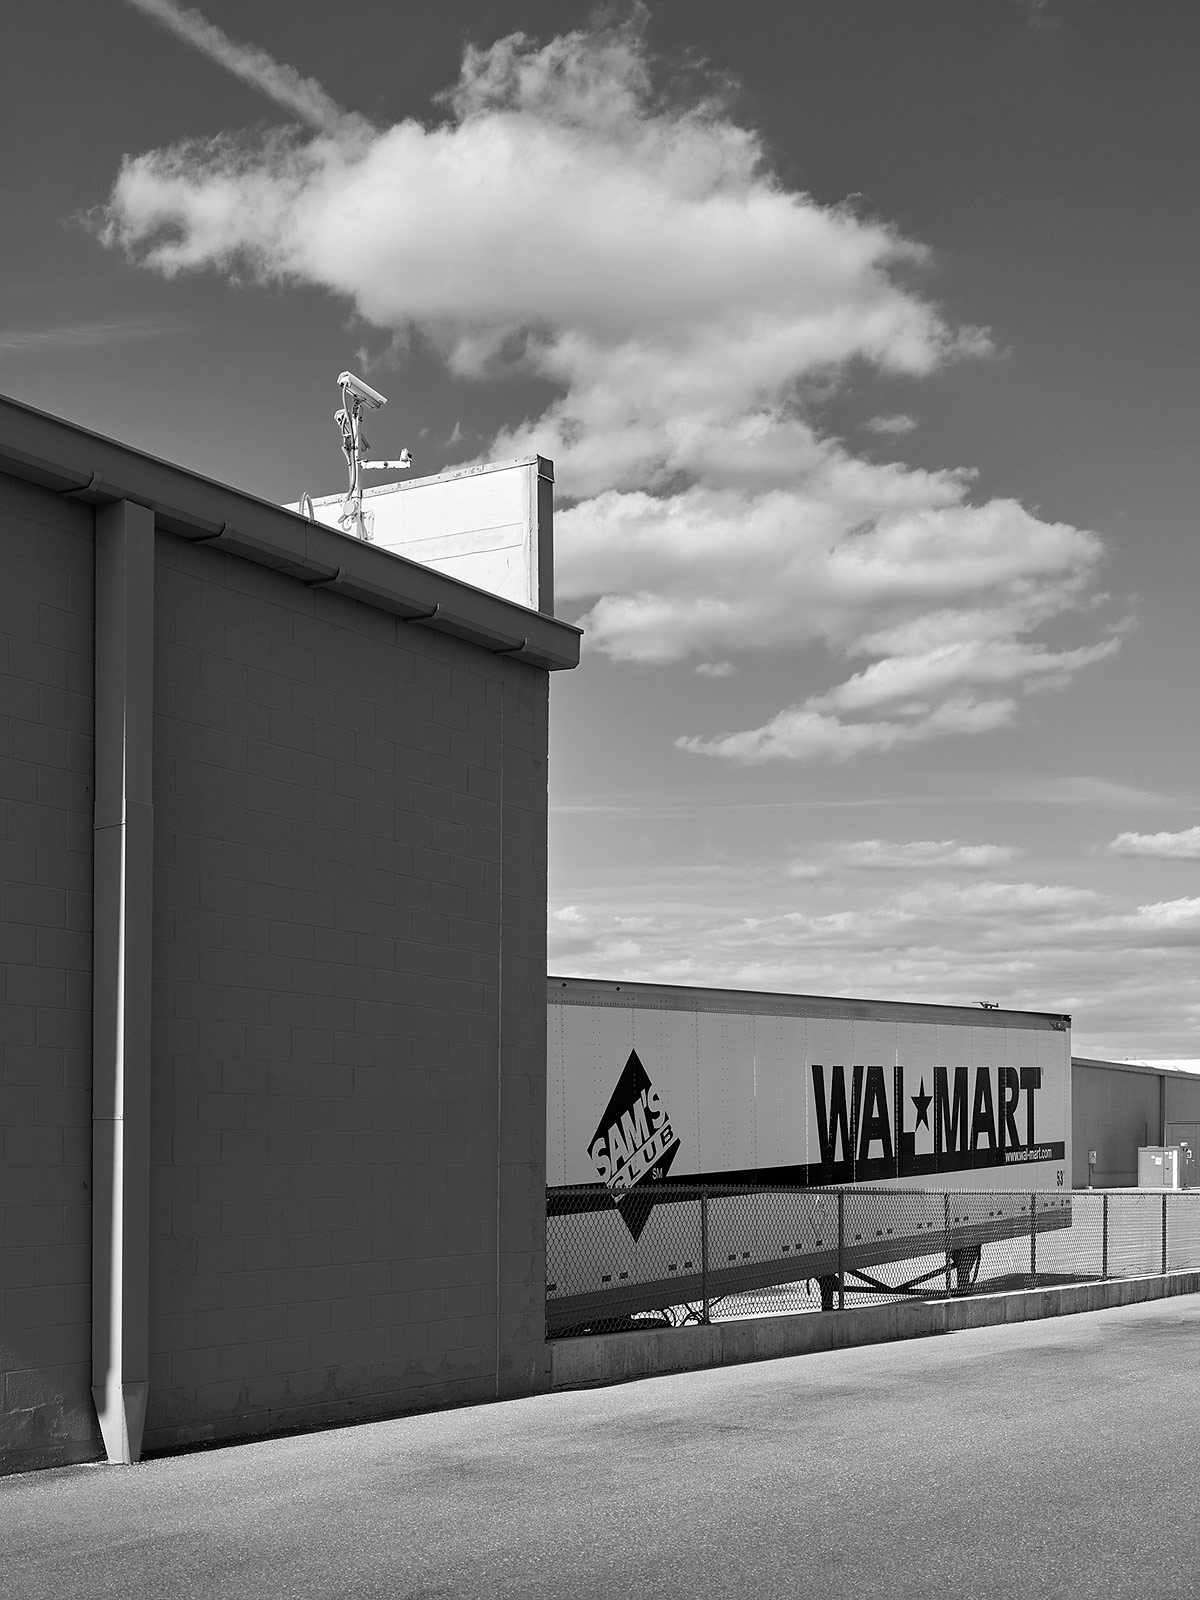 Back Lot, Walmarts, Parksburg, PA